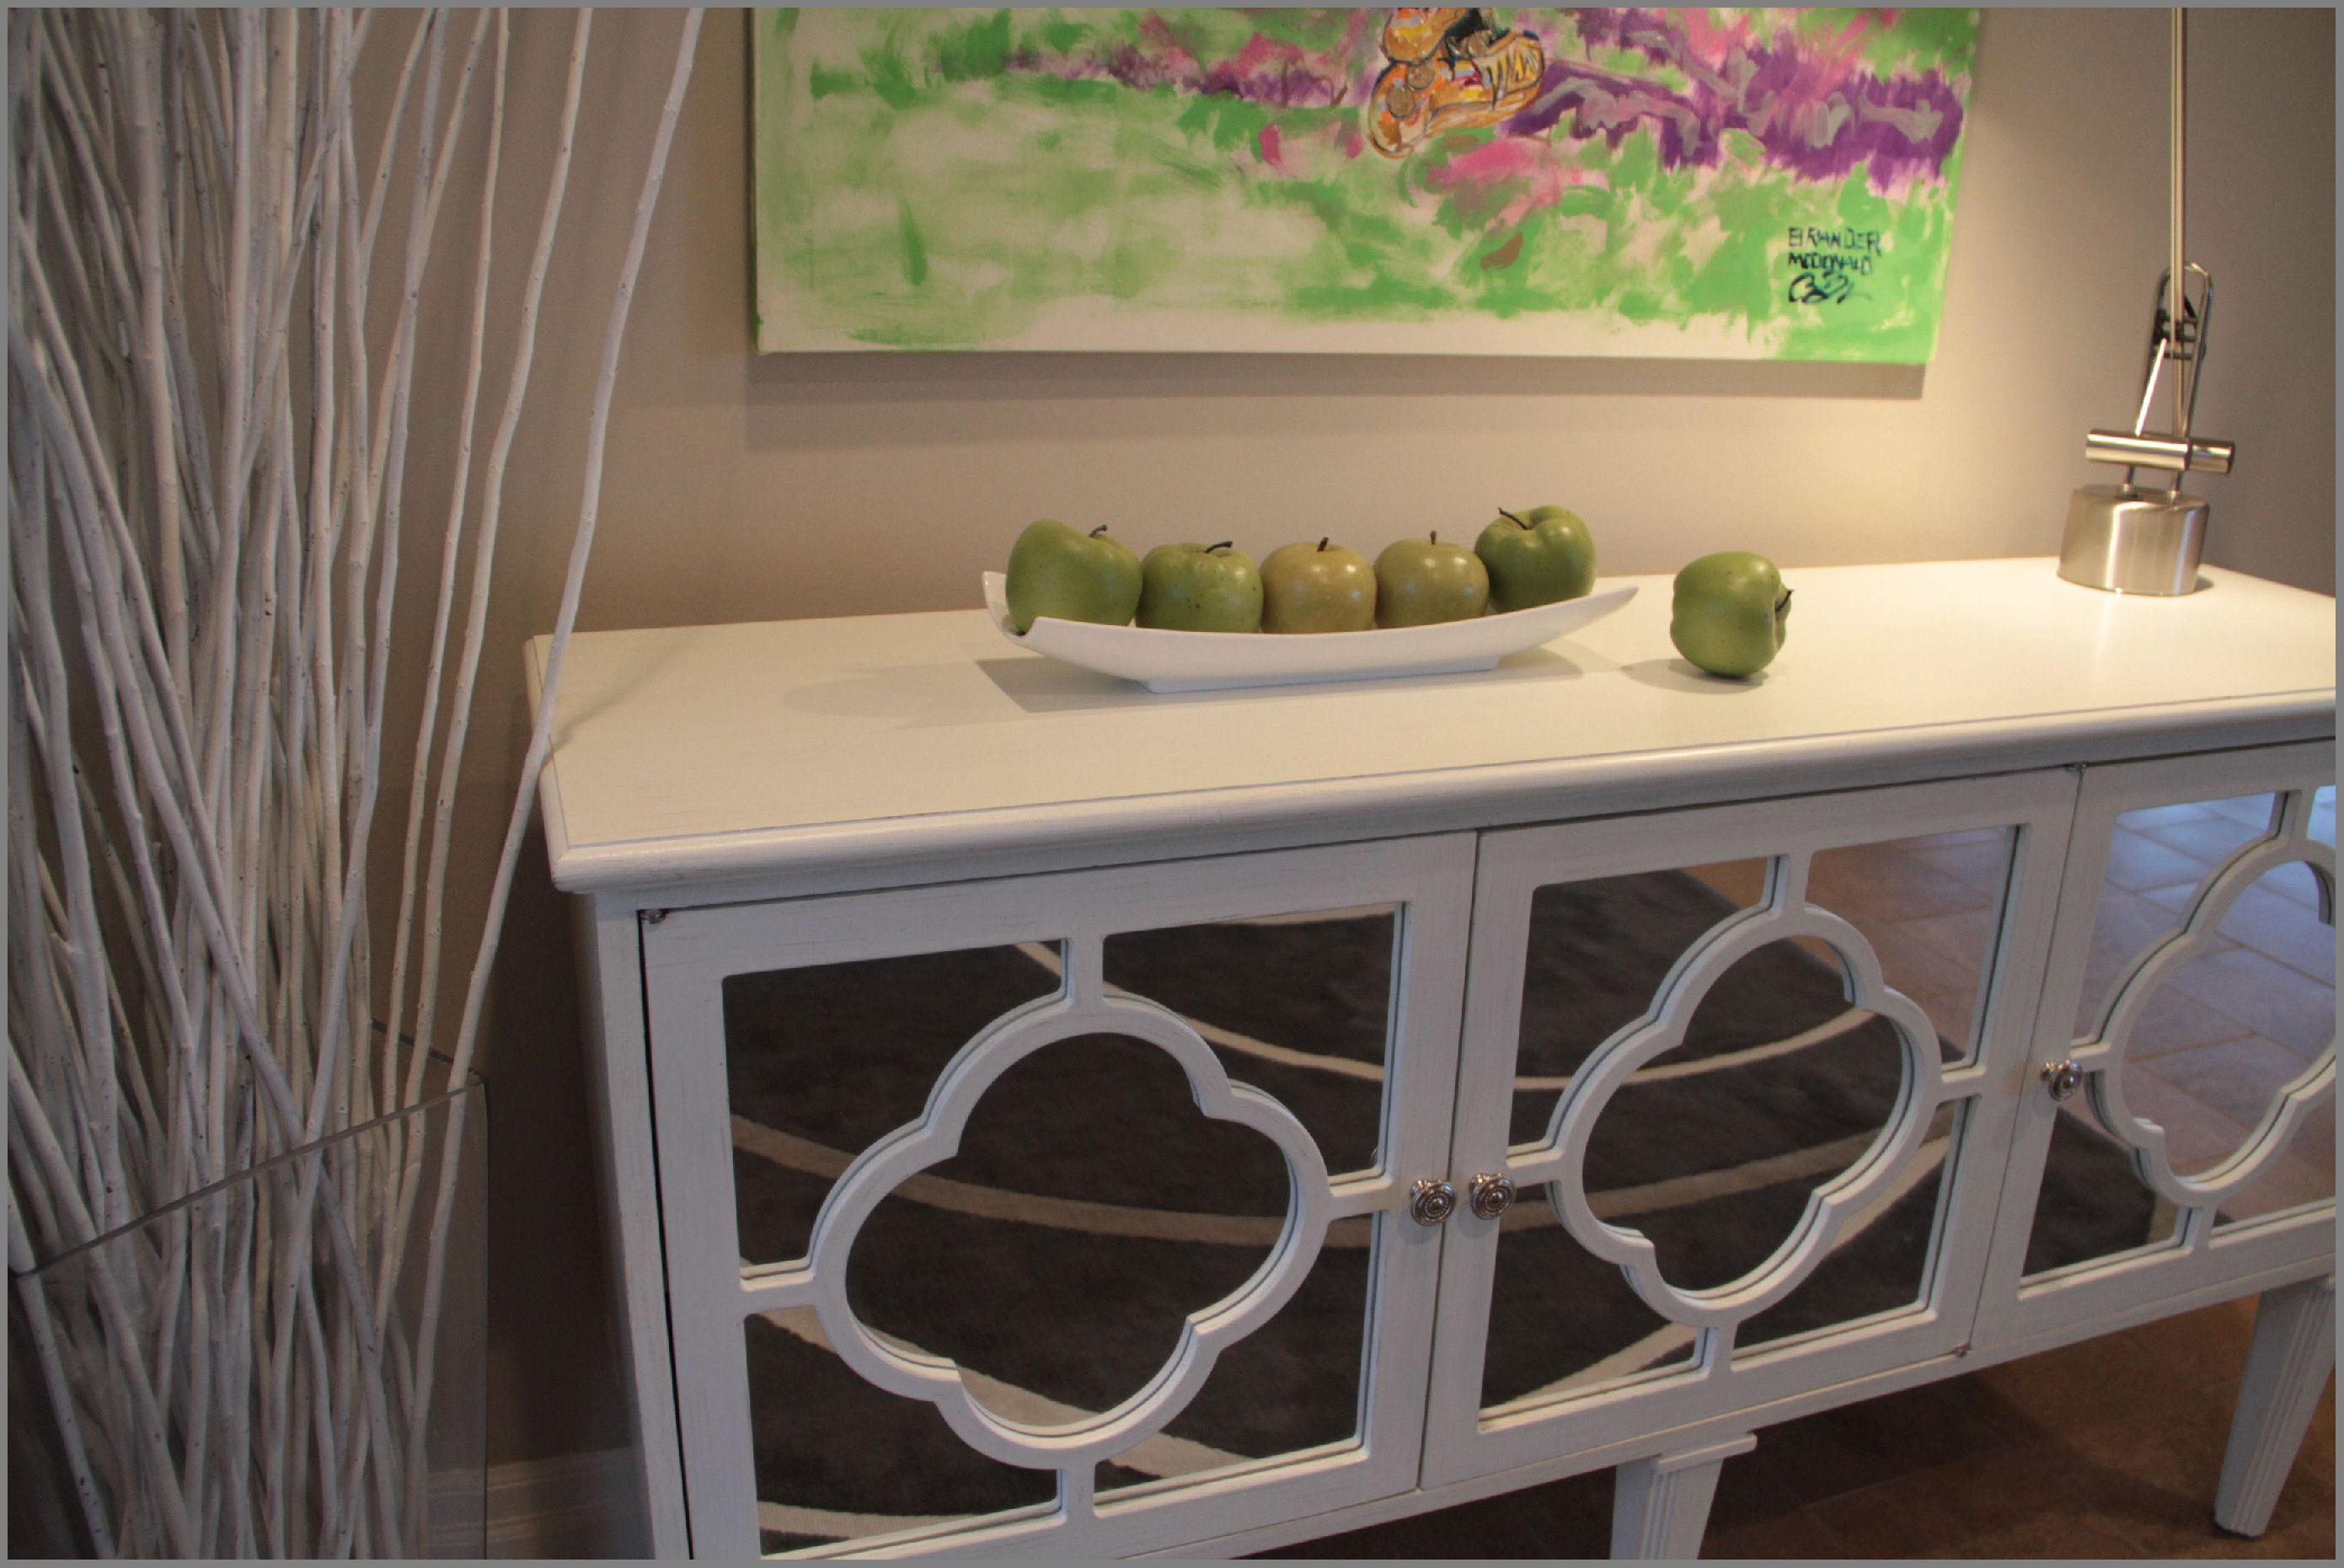 ana white chunky rustic hall console sofa table diy projects modern hallway with mirrored quatrefoil detail ikea accent clock design coffee storage garden sheds ashley furniture